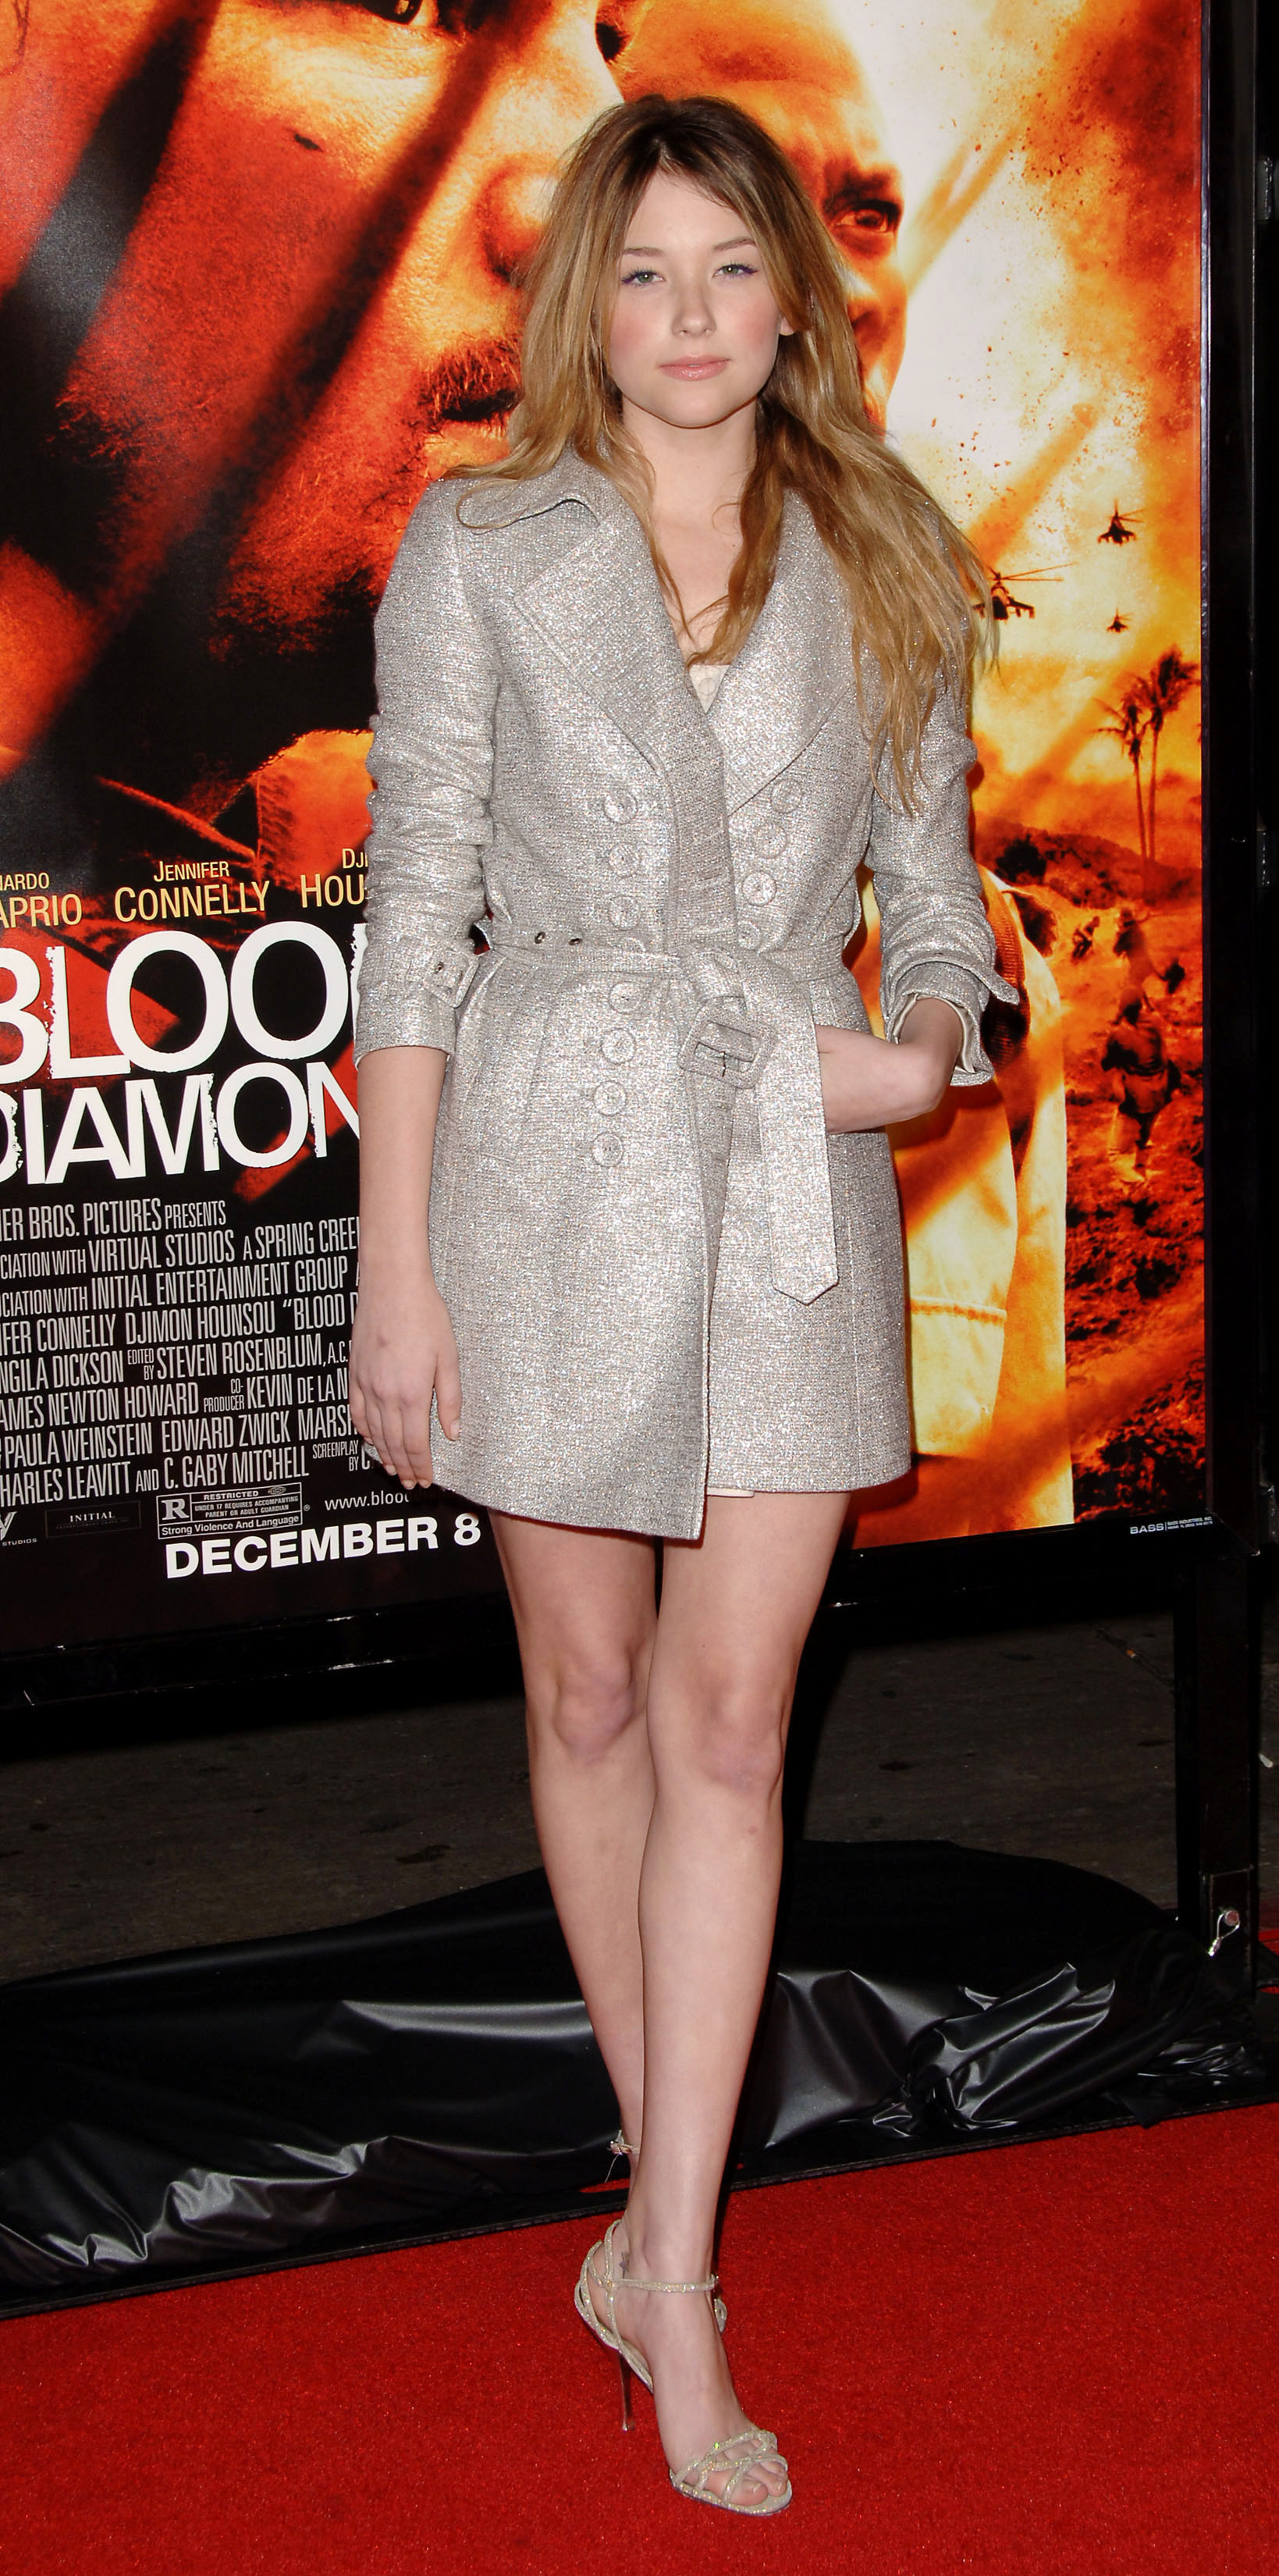 Photo must be credited ©Landov/Alpha 064006 06/12/06 Haley Bennett Blood Diamond Premiere held at the Grauman's Theatre in Hollywood, California